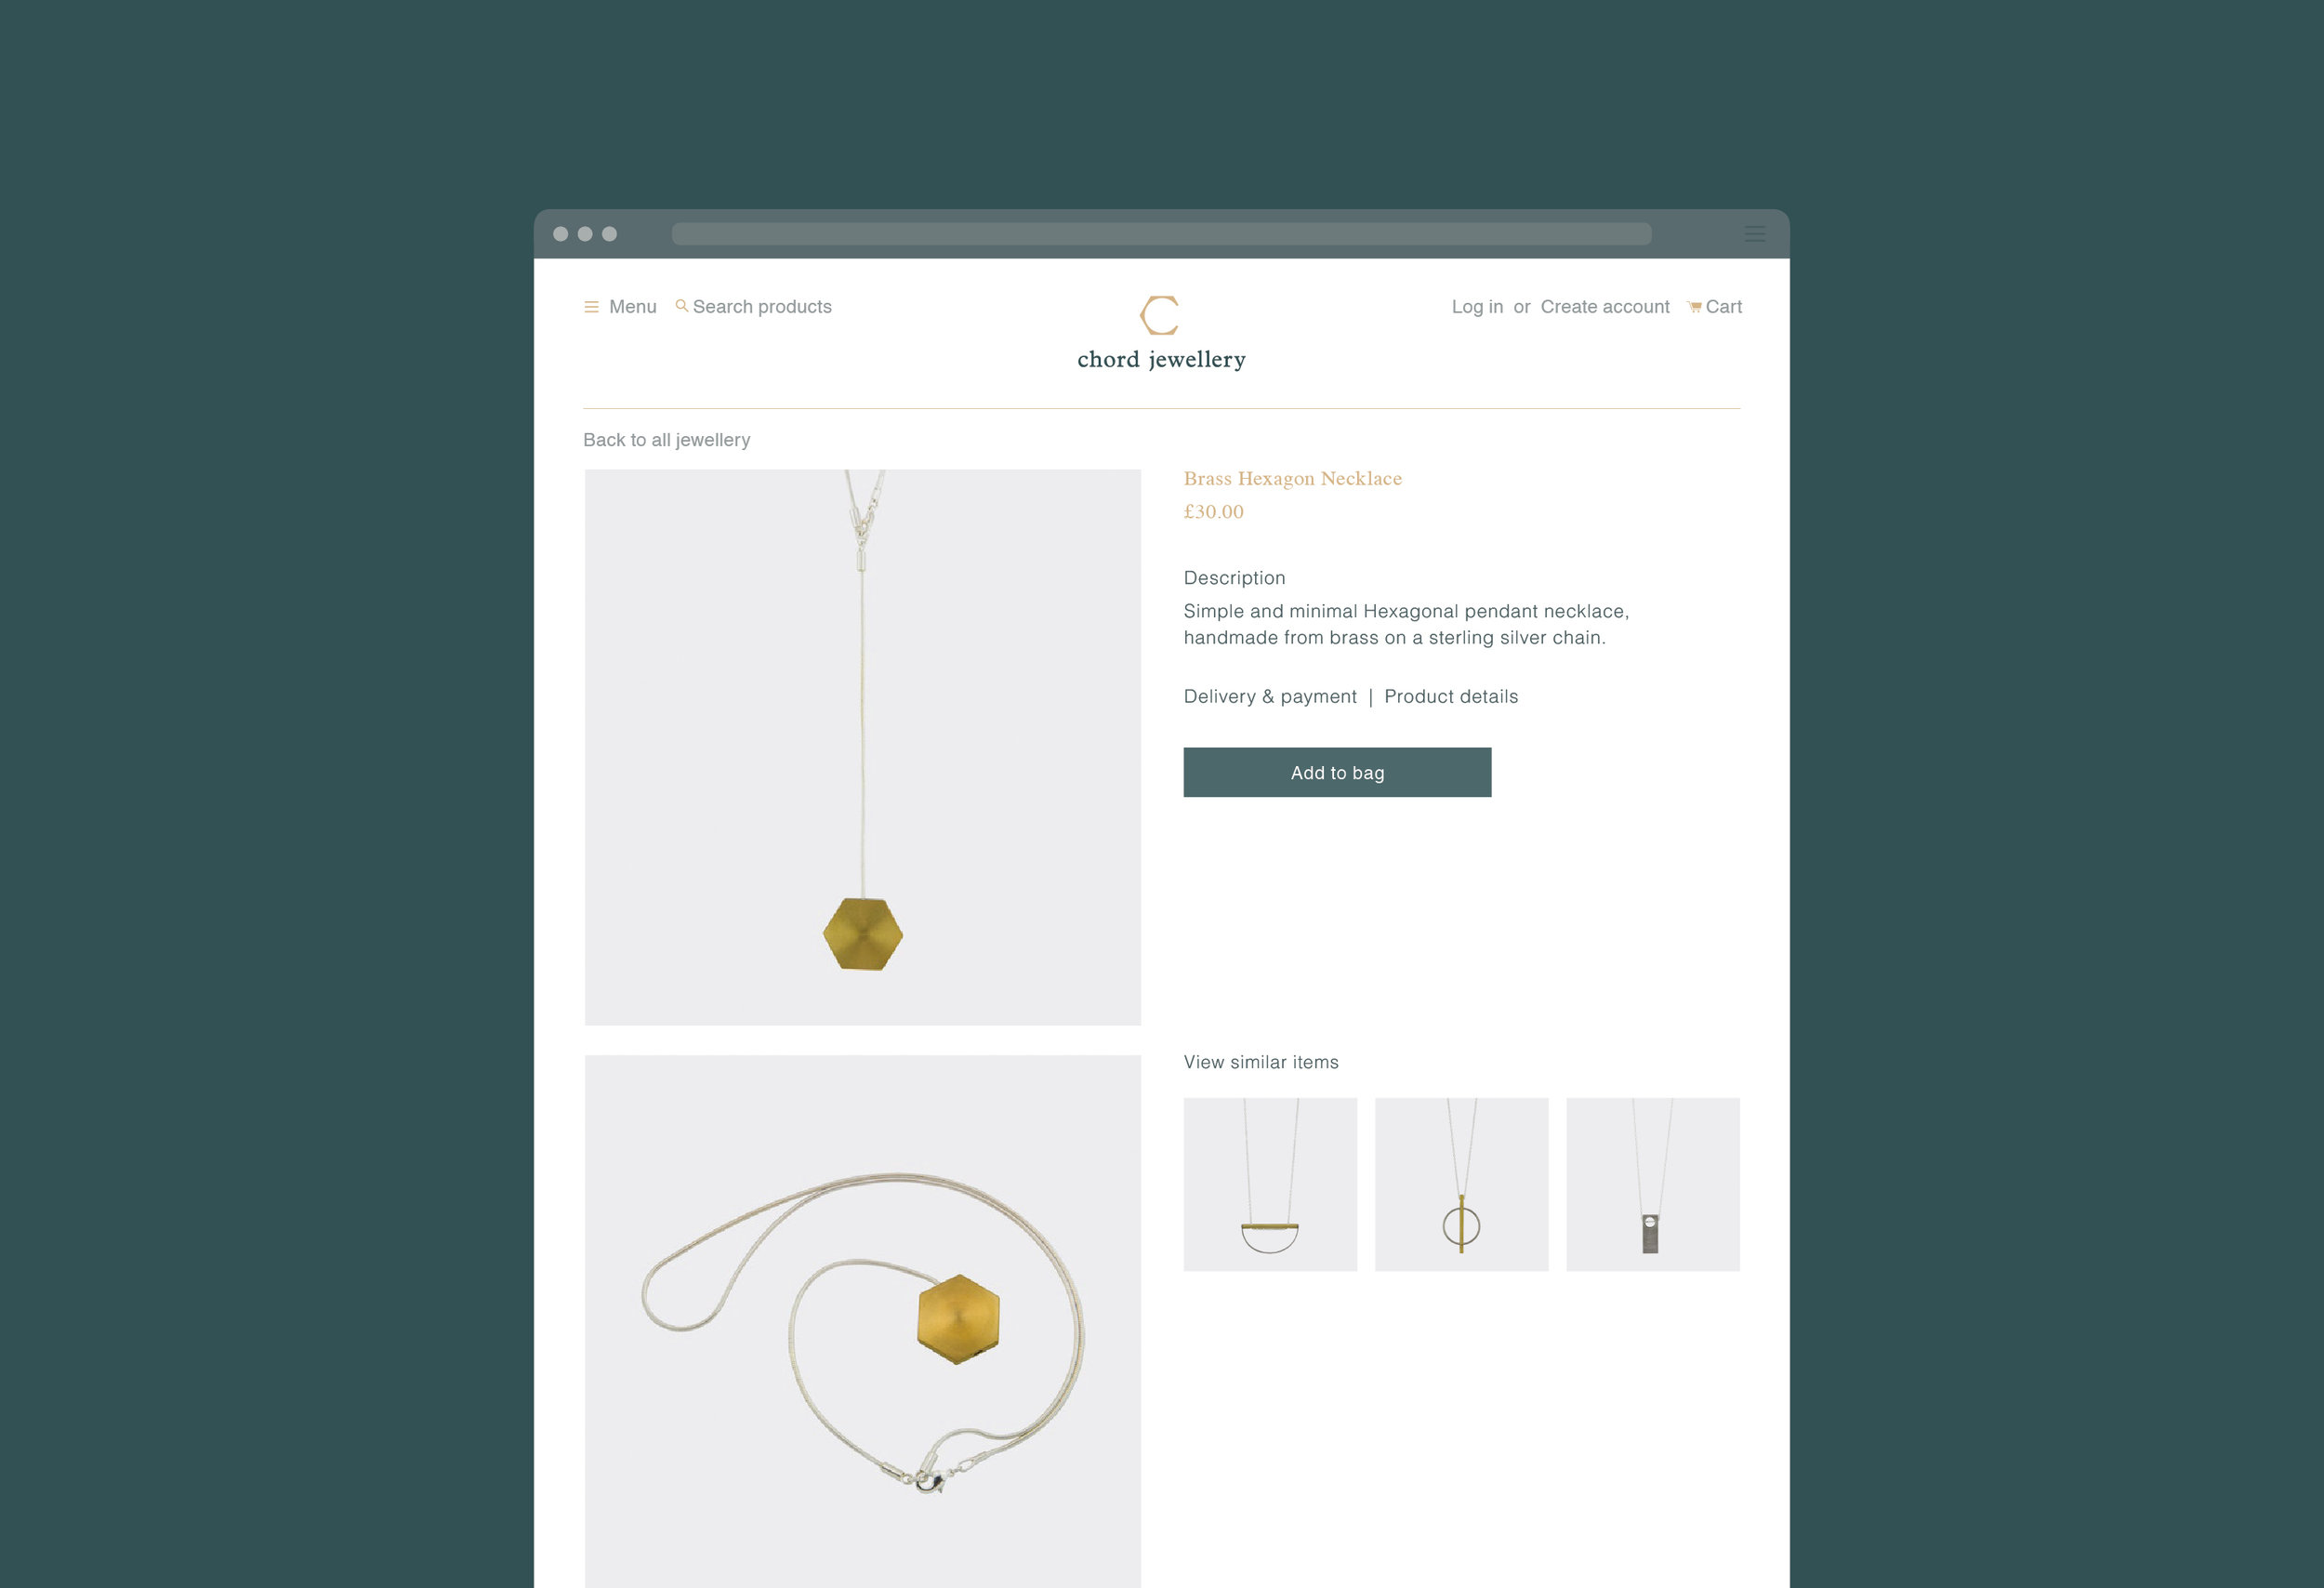 Chord_Jewellery_identity_design_Alan_Clarke-Symonds_graphic_design_website_product_page_015.jpg